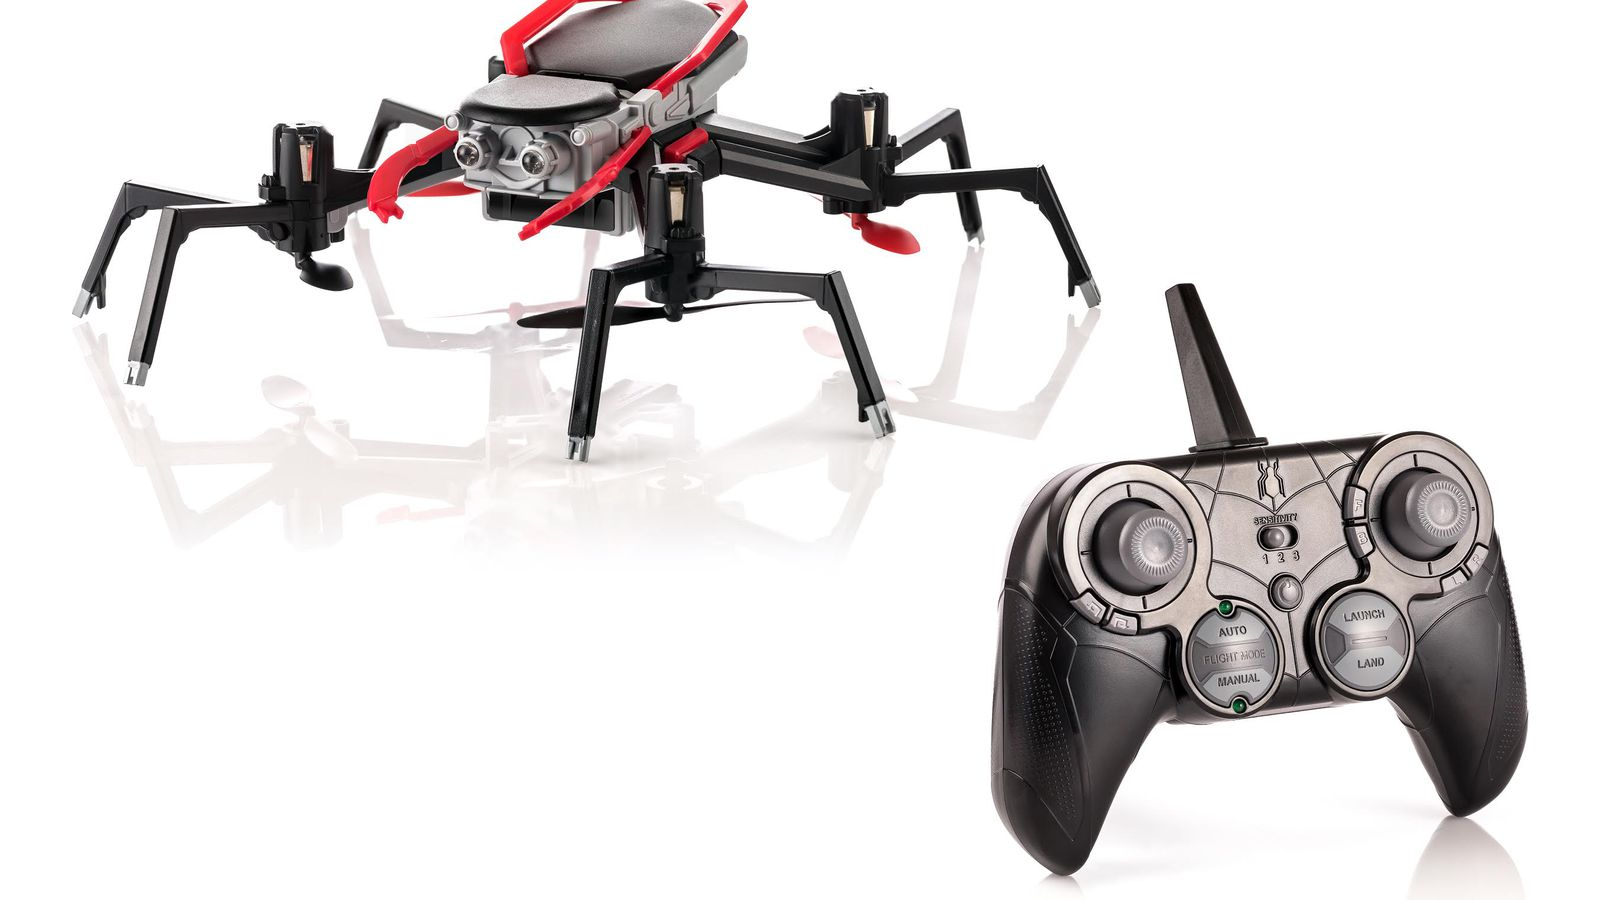 You Spider-Can Be Spider-Man with your Very own Spider-Drone